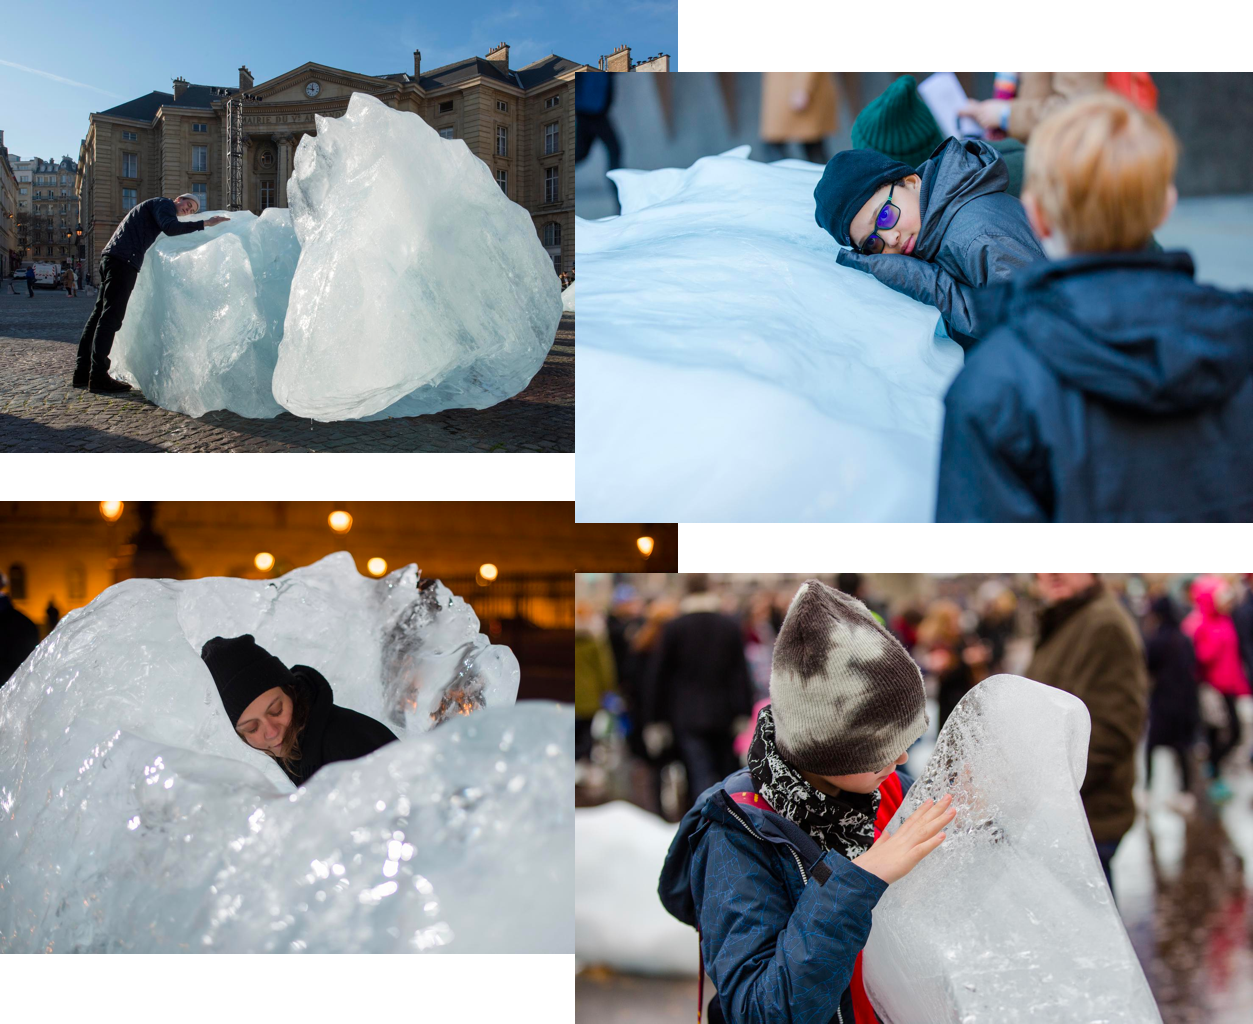 Images of individuals interacting with ice blocks